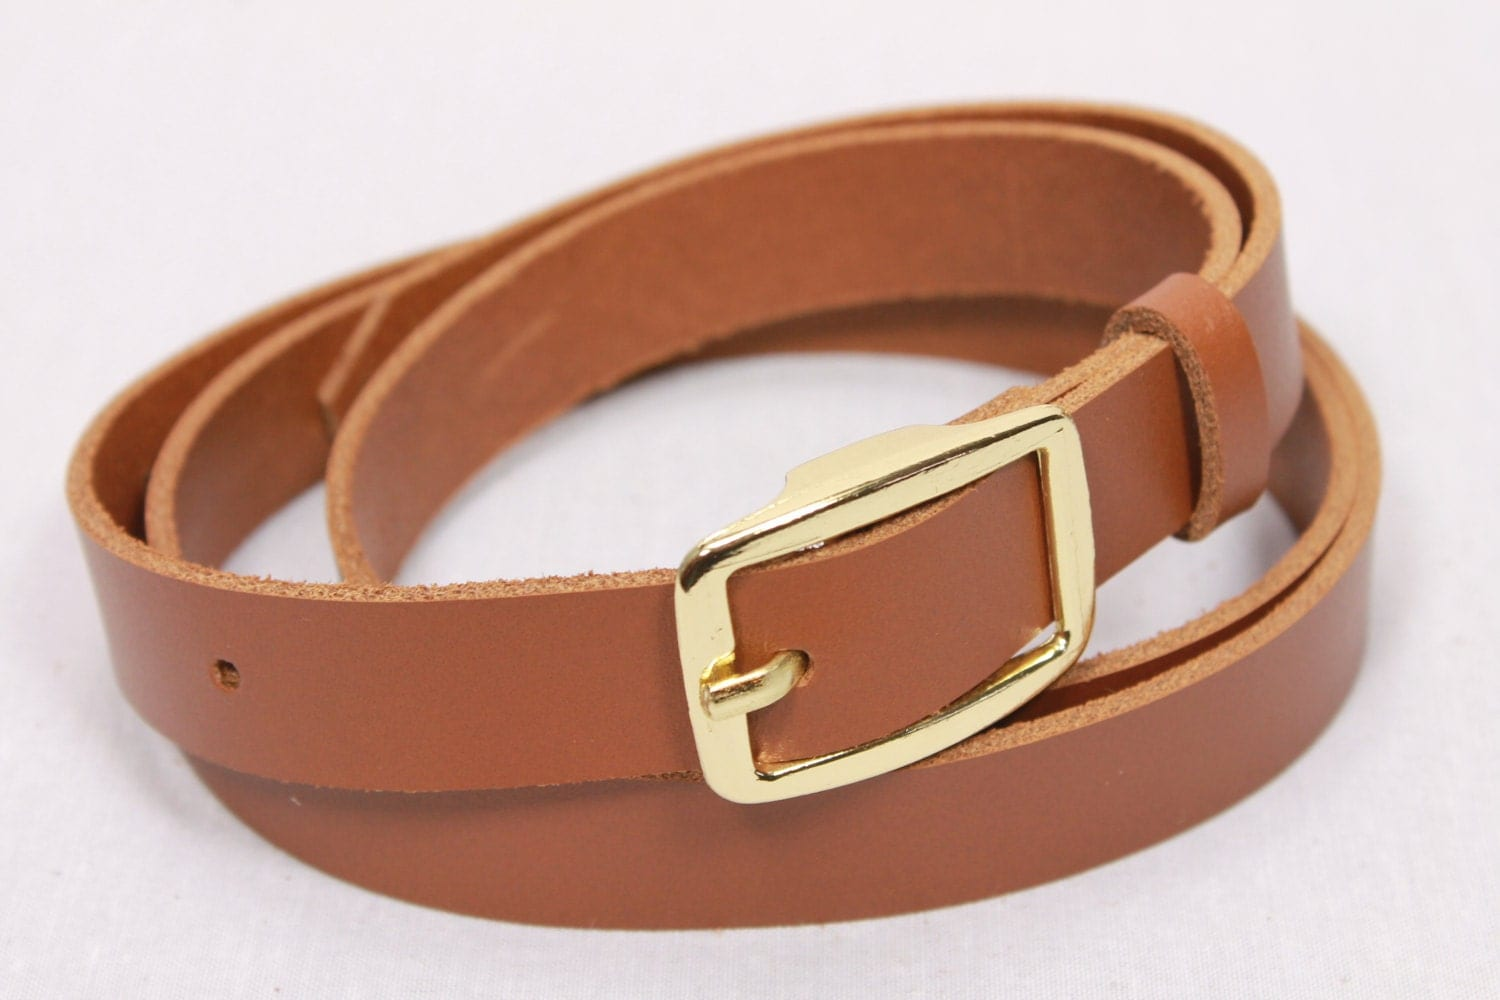 replacement leather belt her luggage holdall